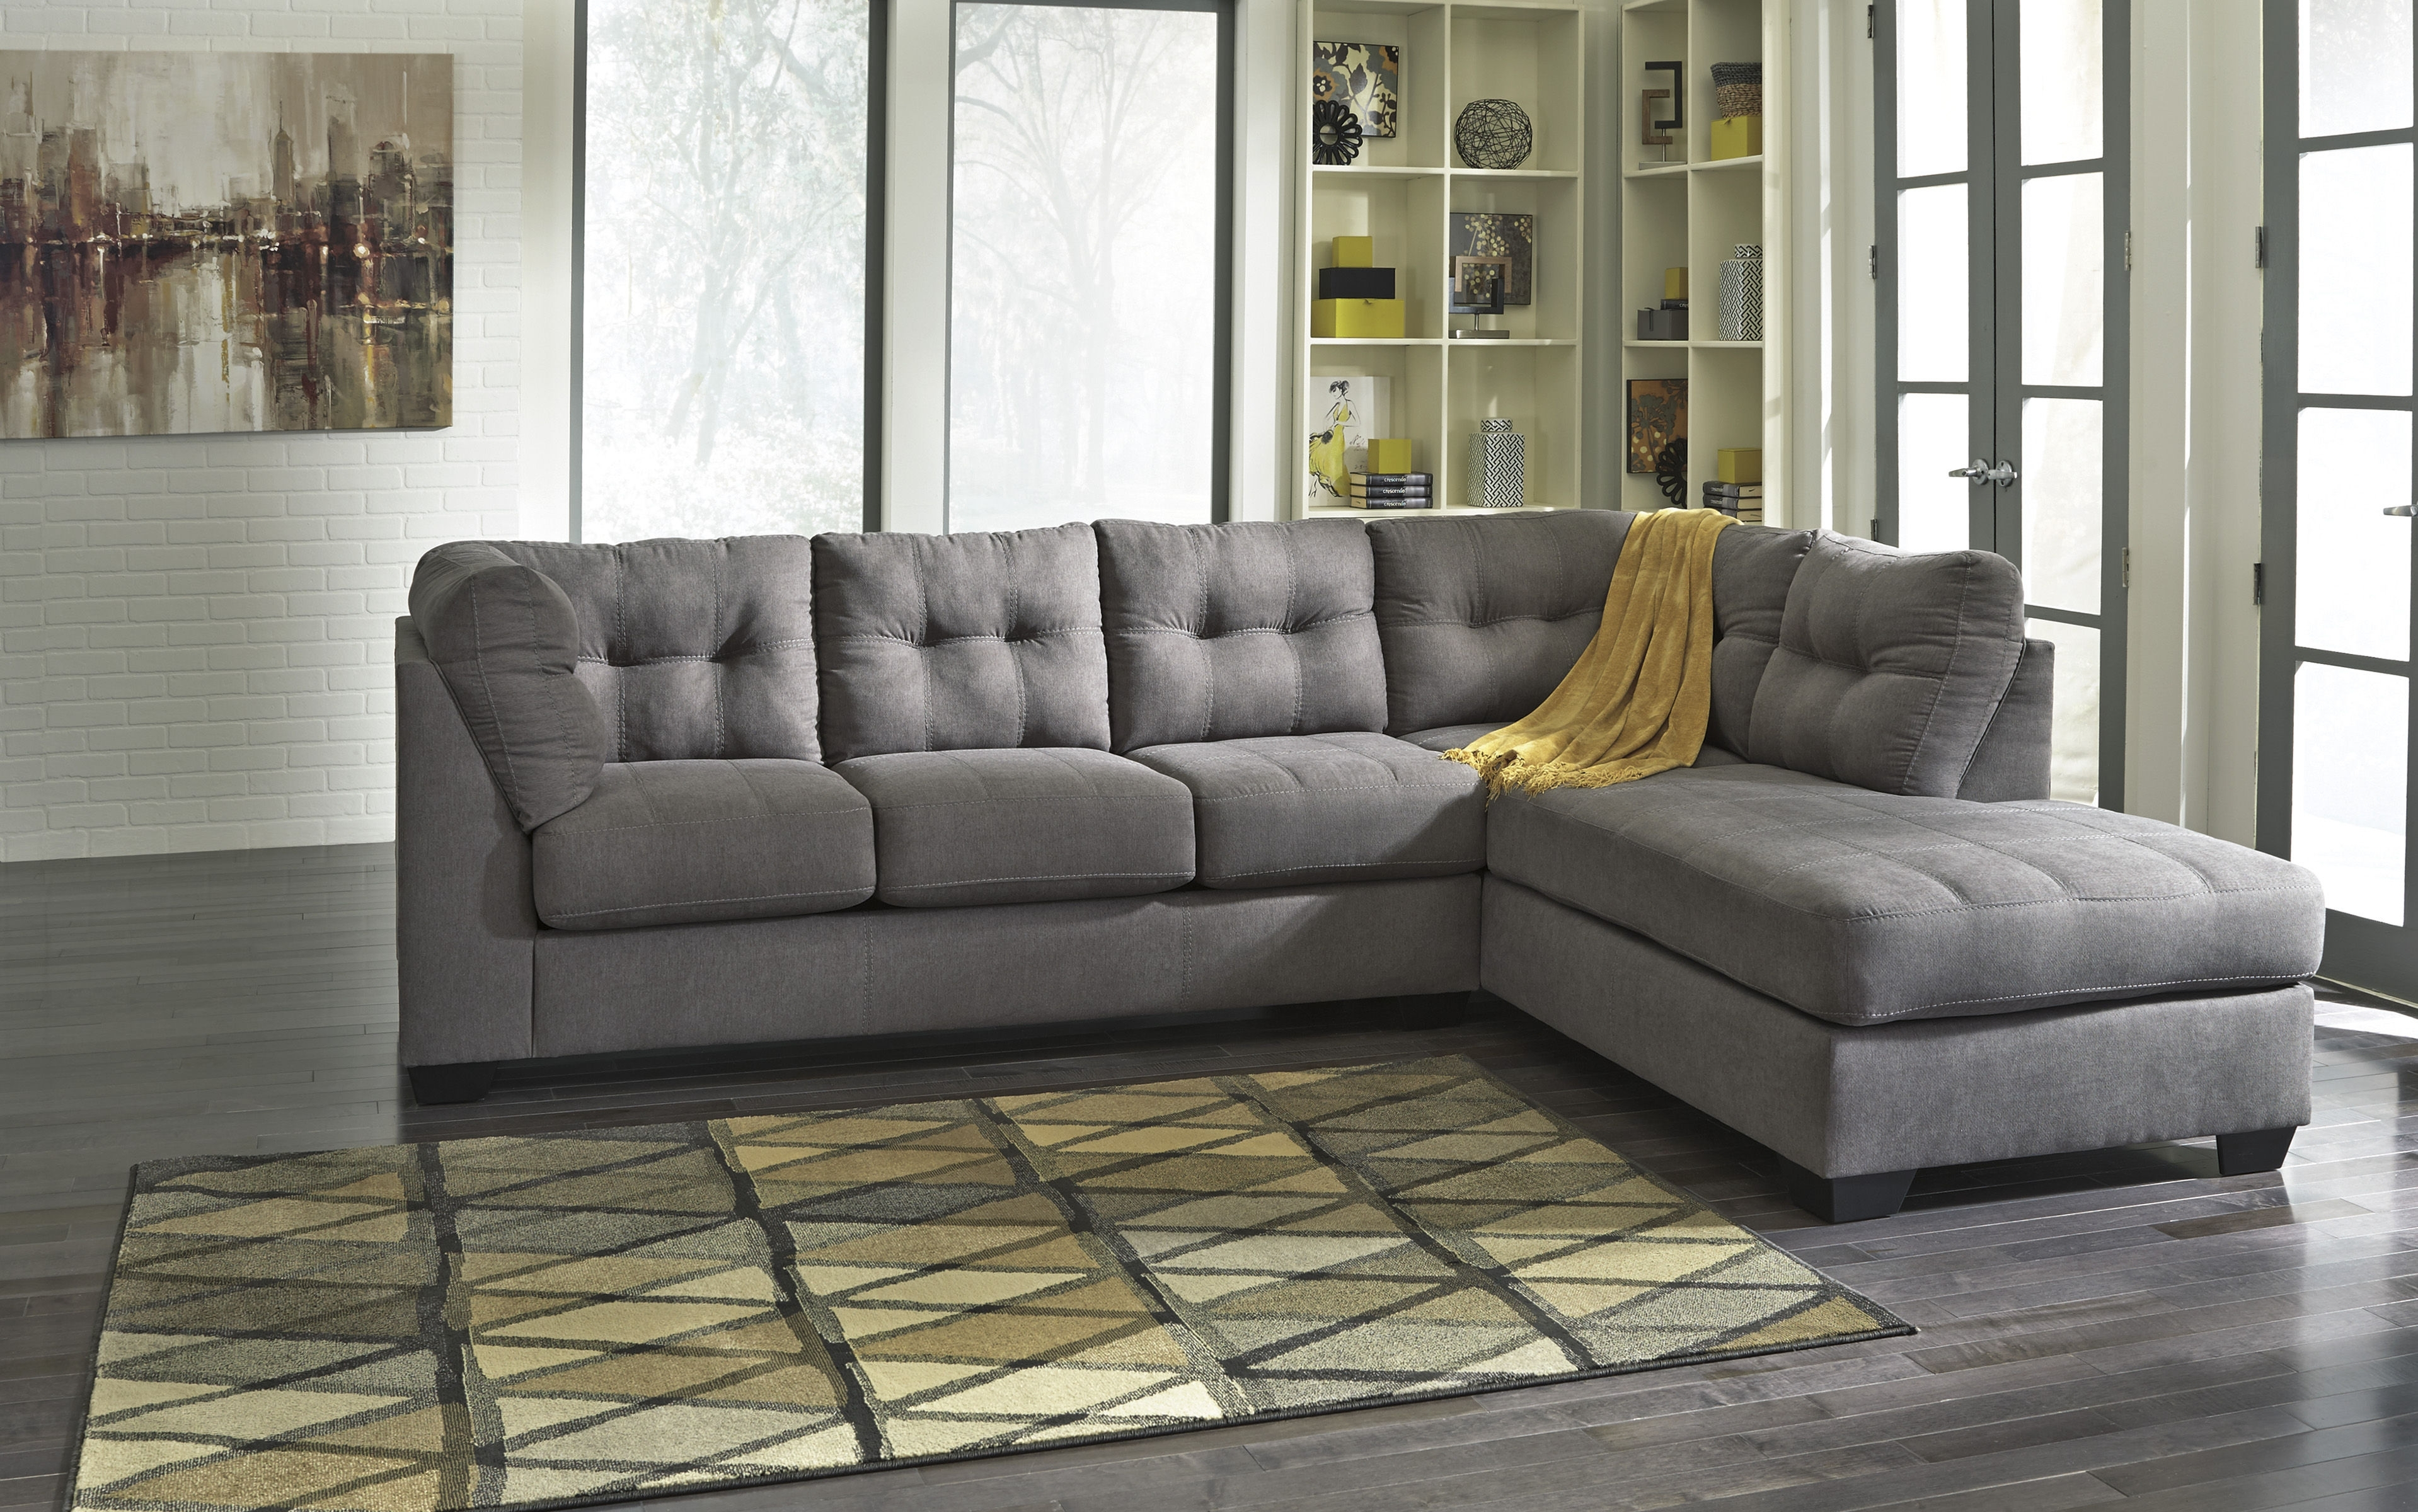 Ashley Furniture Maier Charcoal Raf Chaise Sectional | The Classy Home Within Lucy Grey 2 Piece Sectionals With Raf Chaise (View 9 of 25)